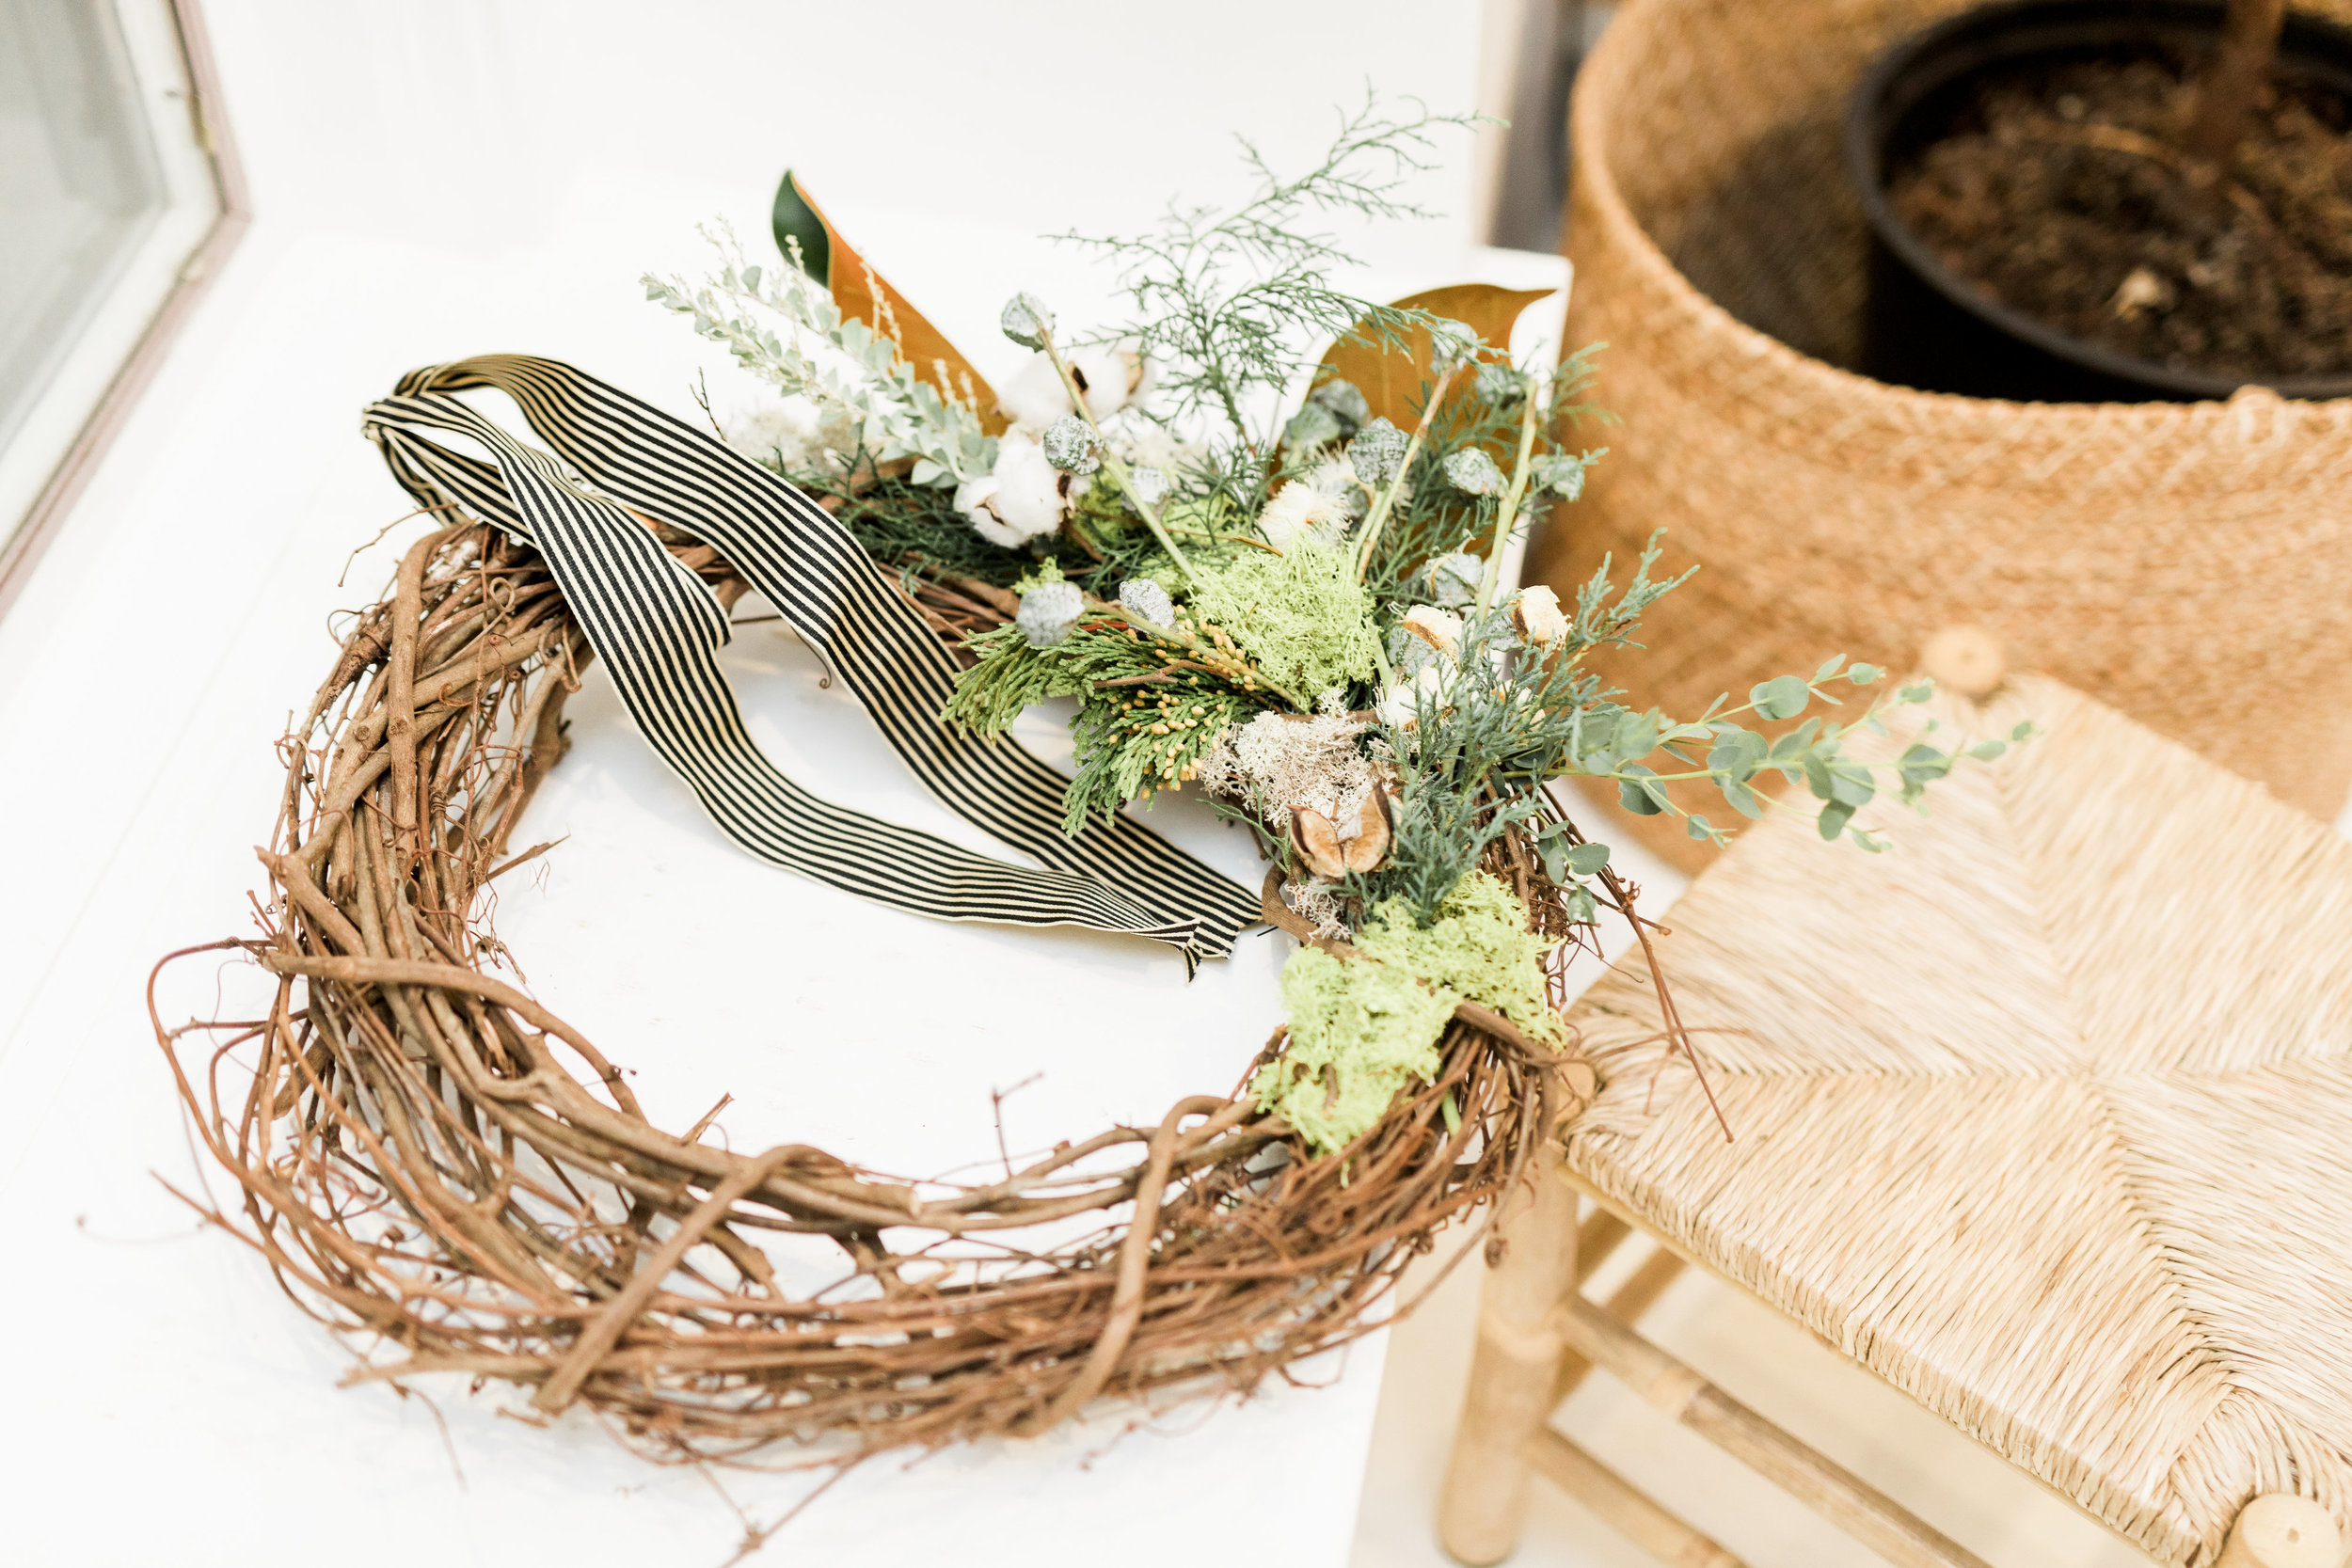 RAYESKY_WREATH_WORKSHOP-0095.jpg